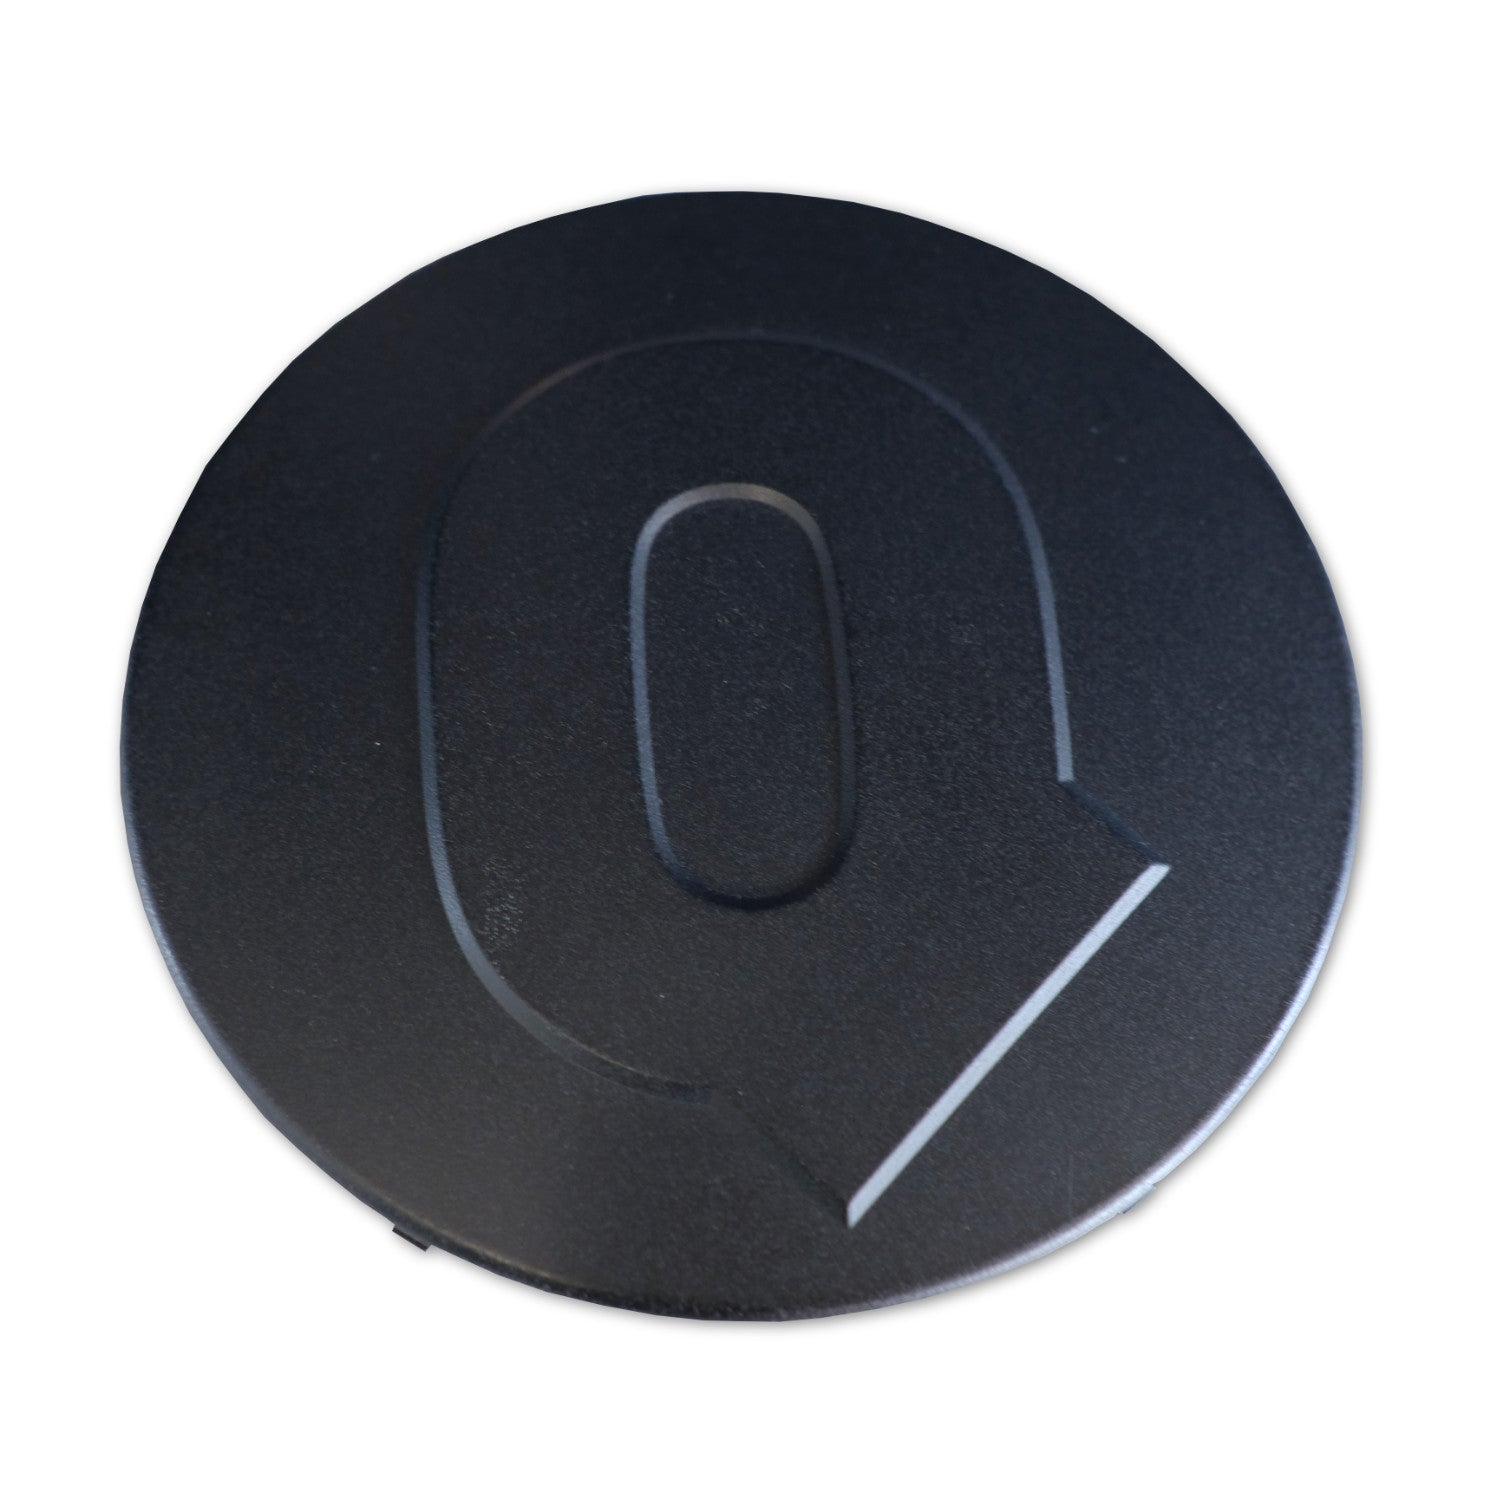 Main Housing Q1 Top Cover - Black